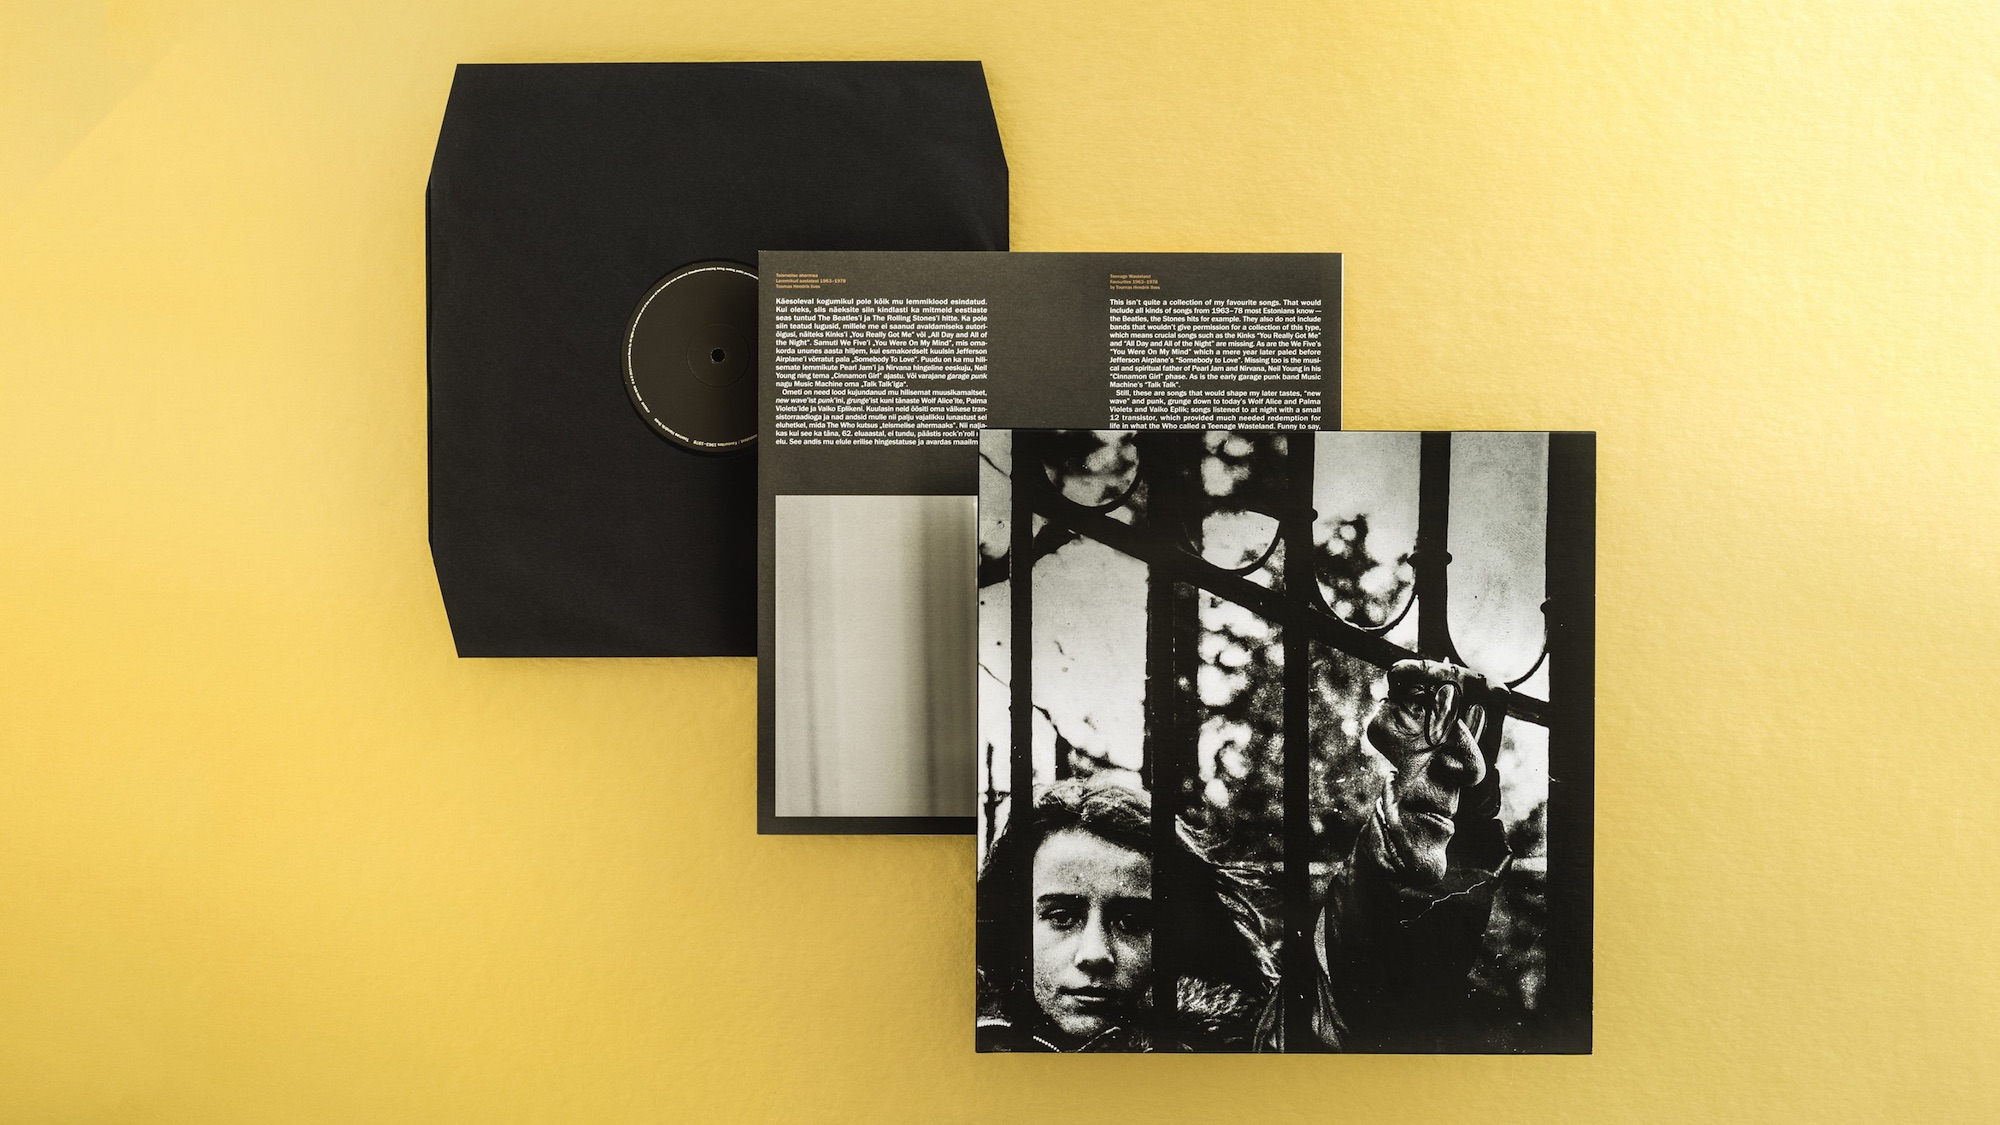 estonian president album packaging7